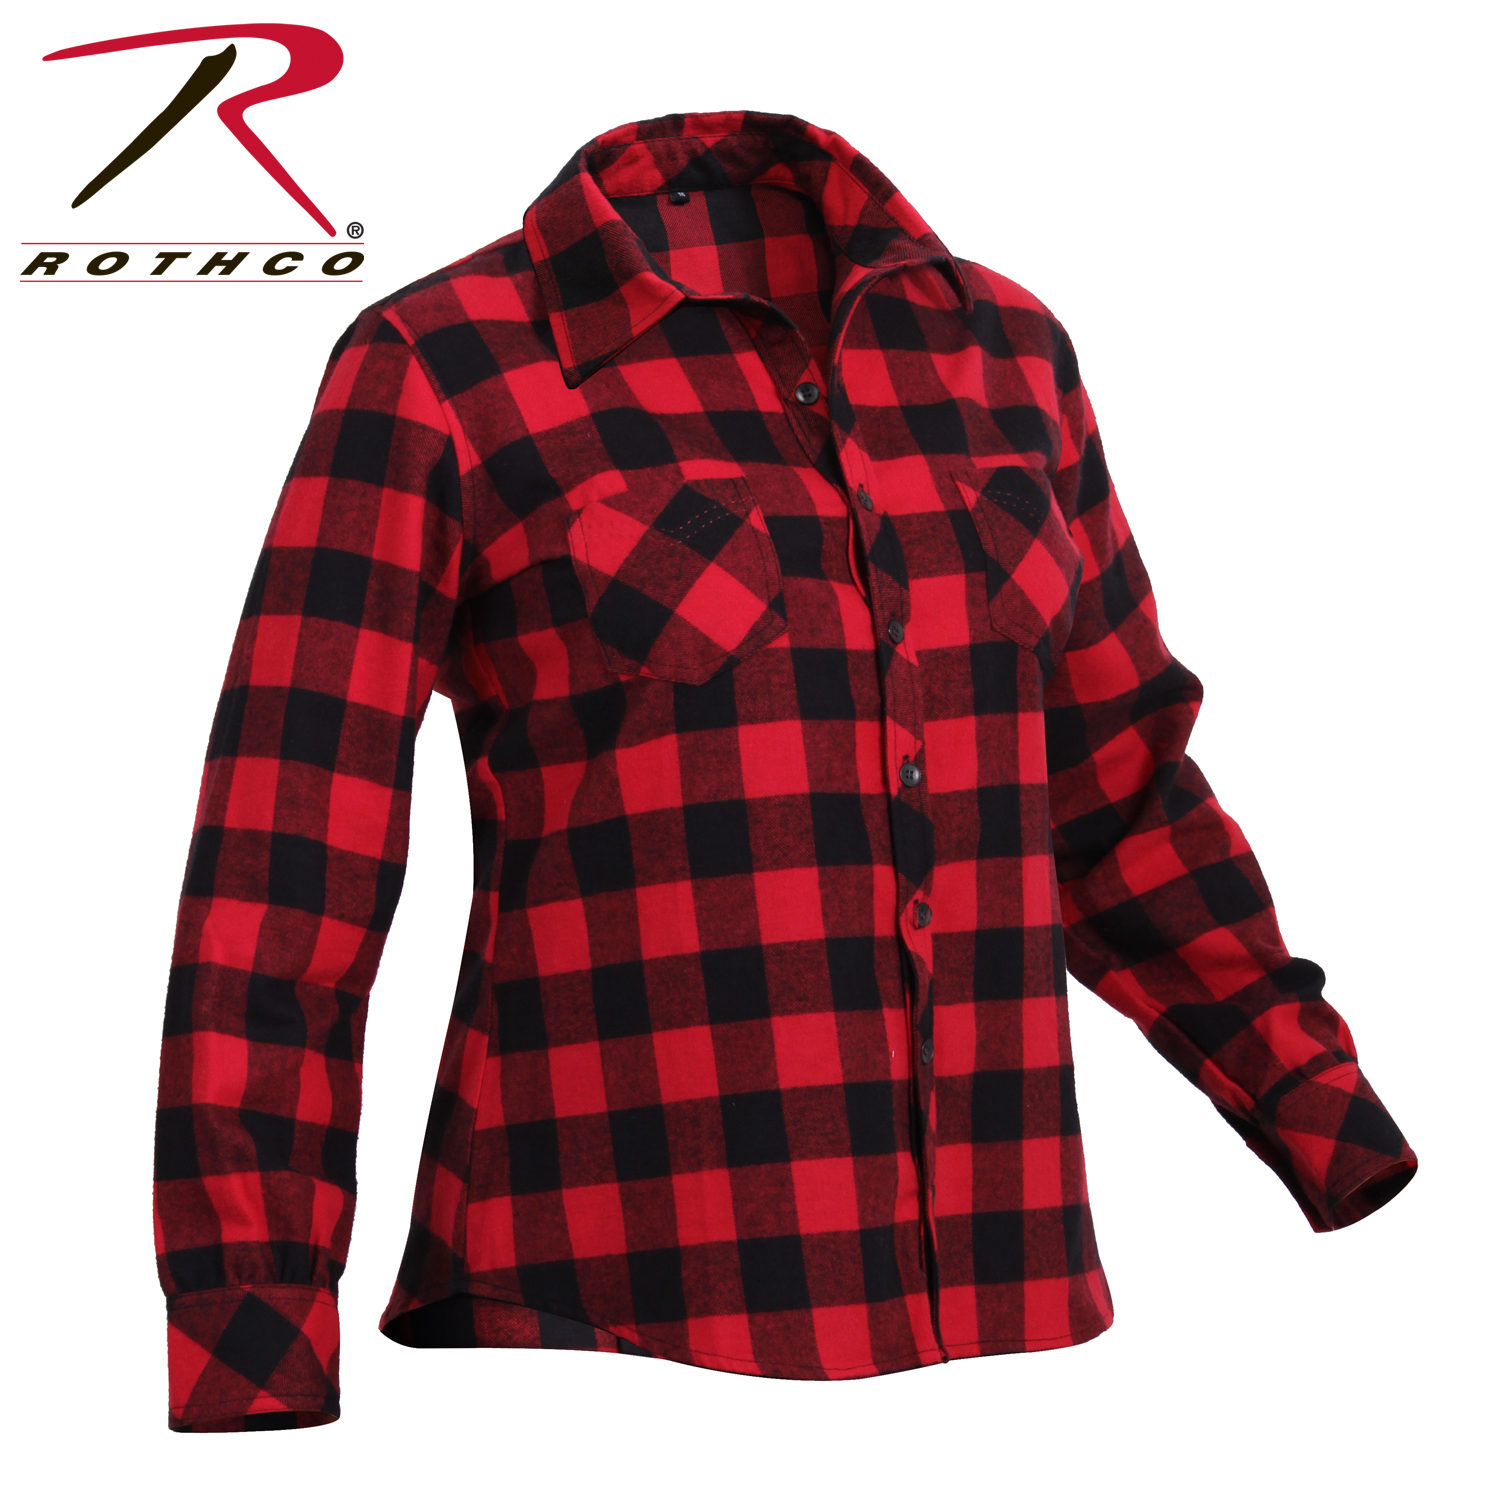 Basic Editions Women's Flannel Shirt - Plaid. Sold by Kmart. $ $ Outdoor Life Men's Shirt Jacket - Plaid. FIRSTBUY New Women Lady Casual O-Neck Mid-Long Style Shirt Long Sleeve Plus Size Plaid Shirt(Red & Black) Sold by Firstbuy + 9. Burnside B Women's Long Sleeve Plaid Shirt Red,3X. Sold by gusajigadexe.cf $ $